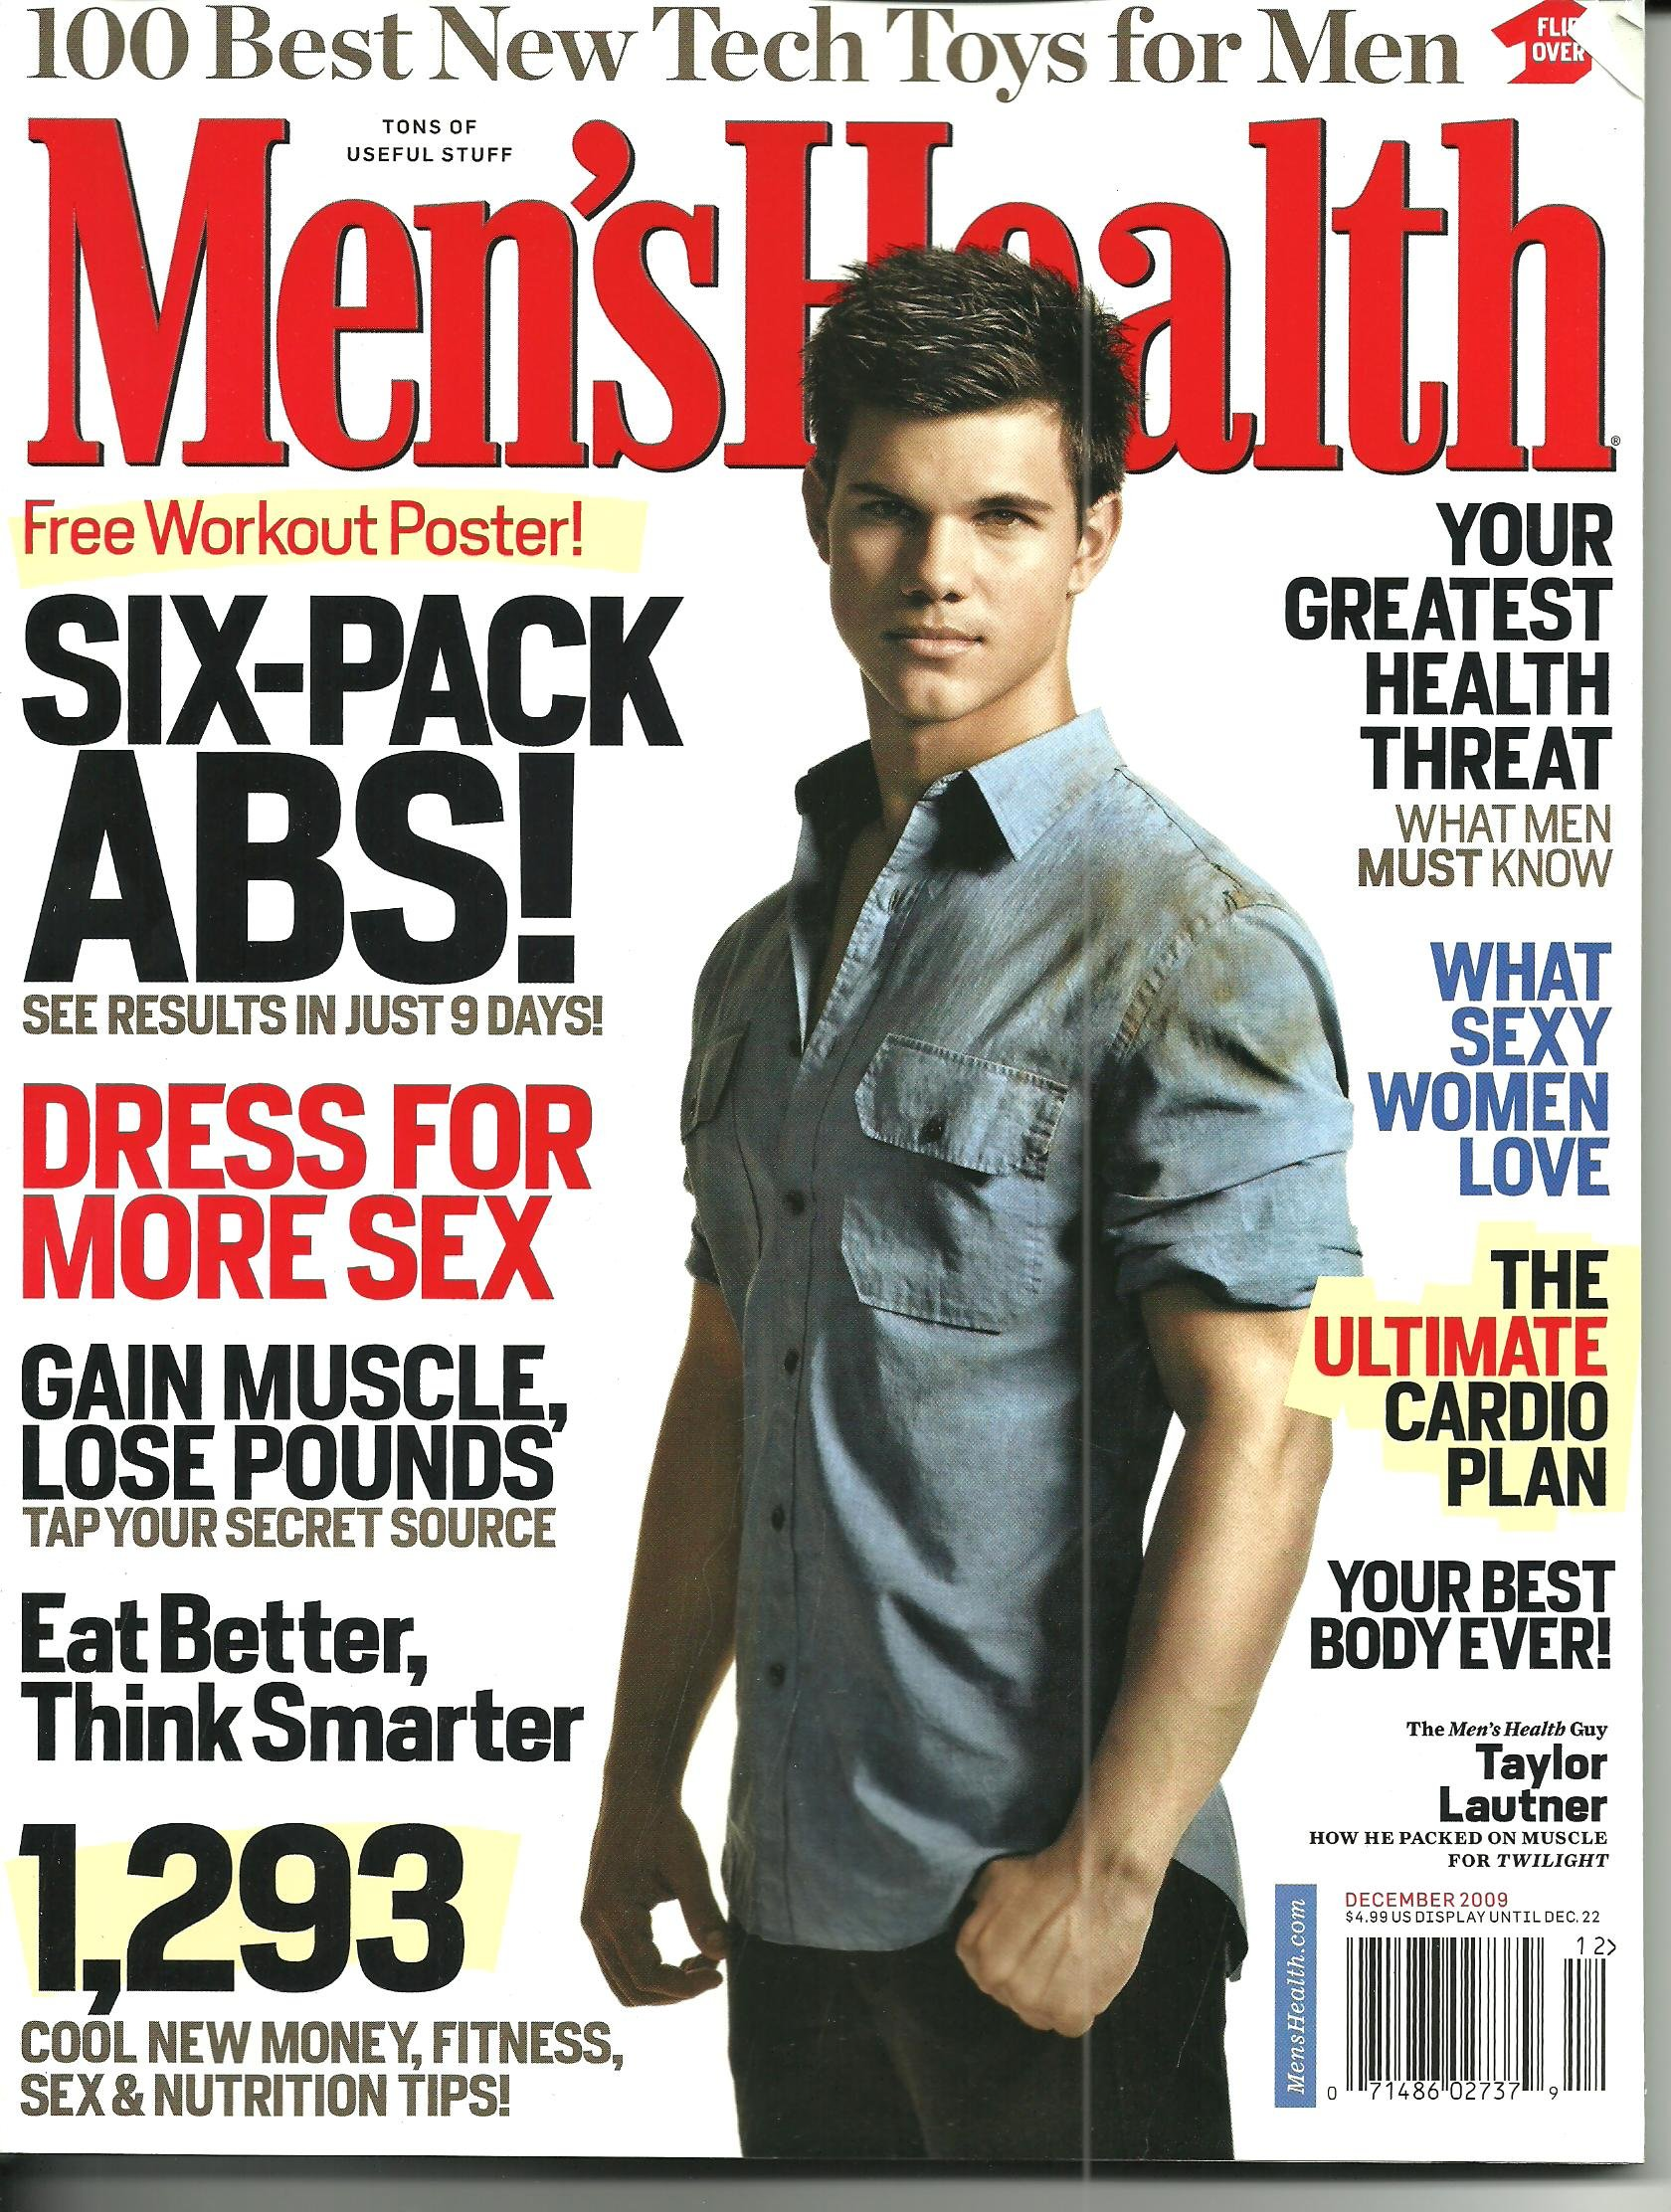 a916234c316 Men s Health December 2009 Taylor Lautner Best Guy Foods in America The  Ultimate Cardio Plan Your Greatest Health Threat Print – 2009